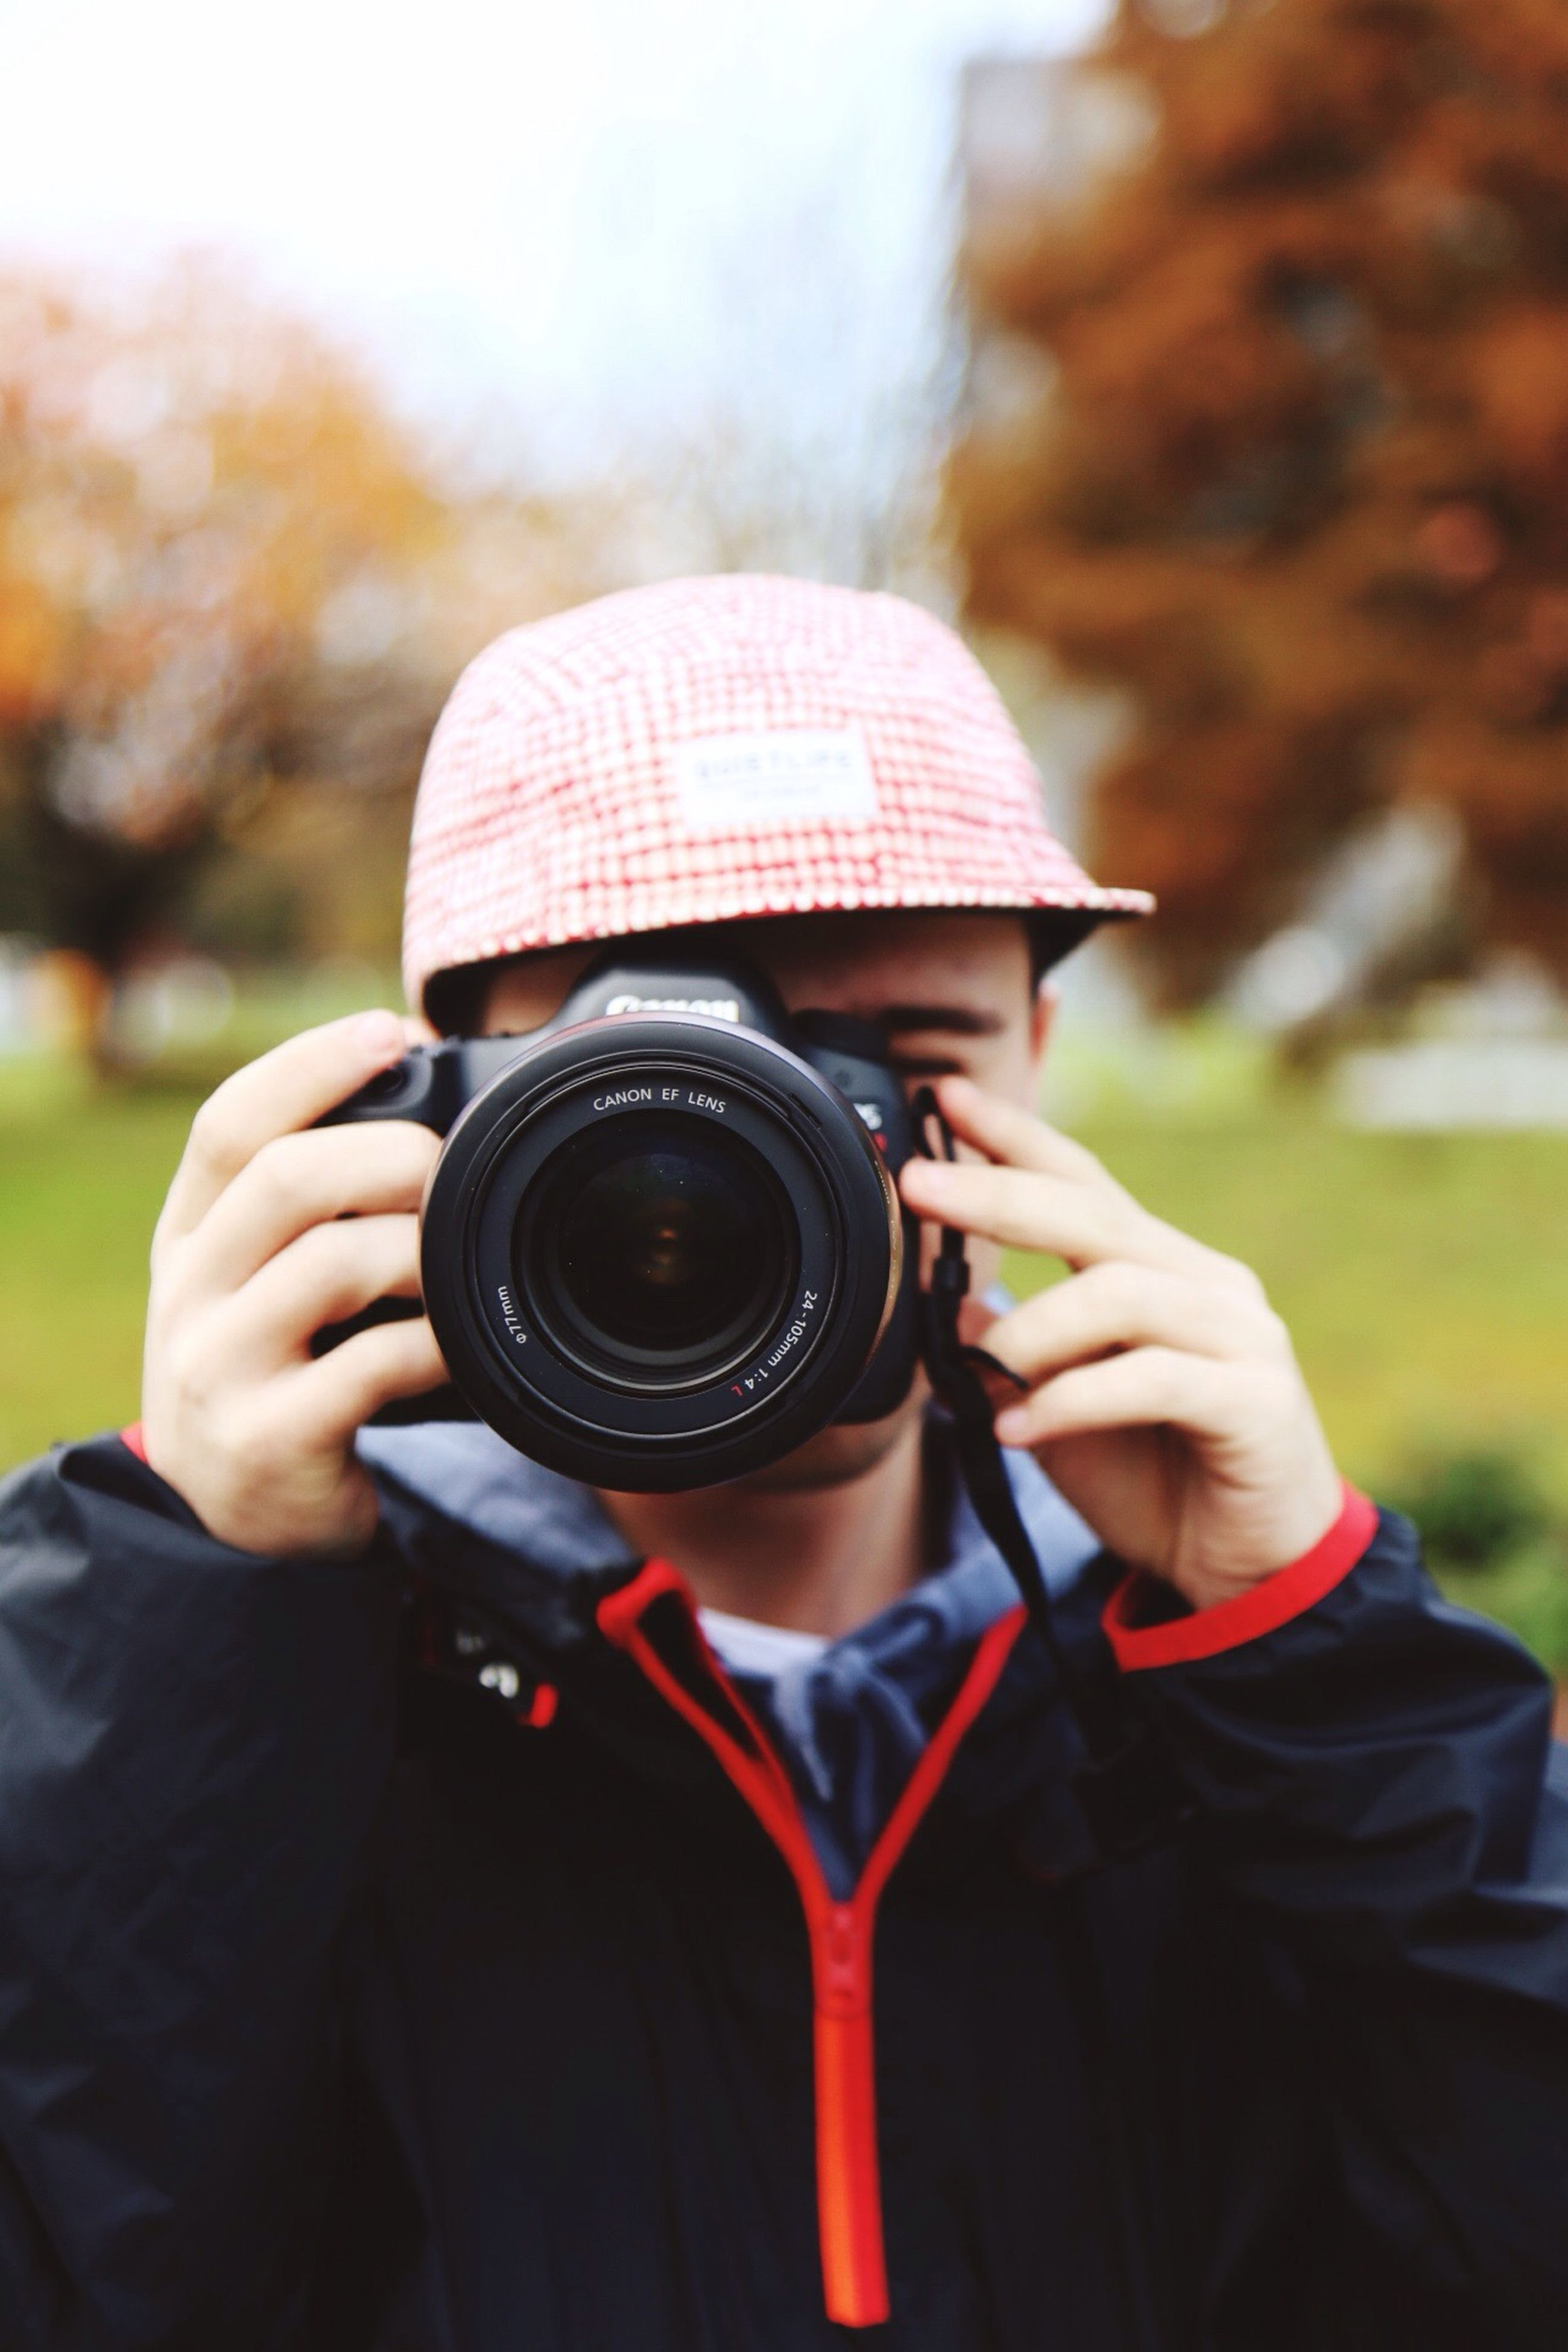 photography themes, camera - photographic equipment, holding, photographing, one person, focus on foreground, outdoors, technology, lifestyles, photographer, real people, slr camera, close-up, day, digital single-lens reflex camera, flat cap, sky, human hand, people, adult